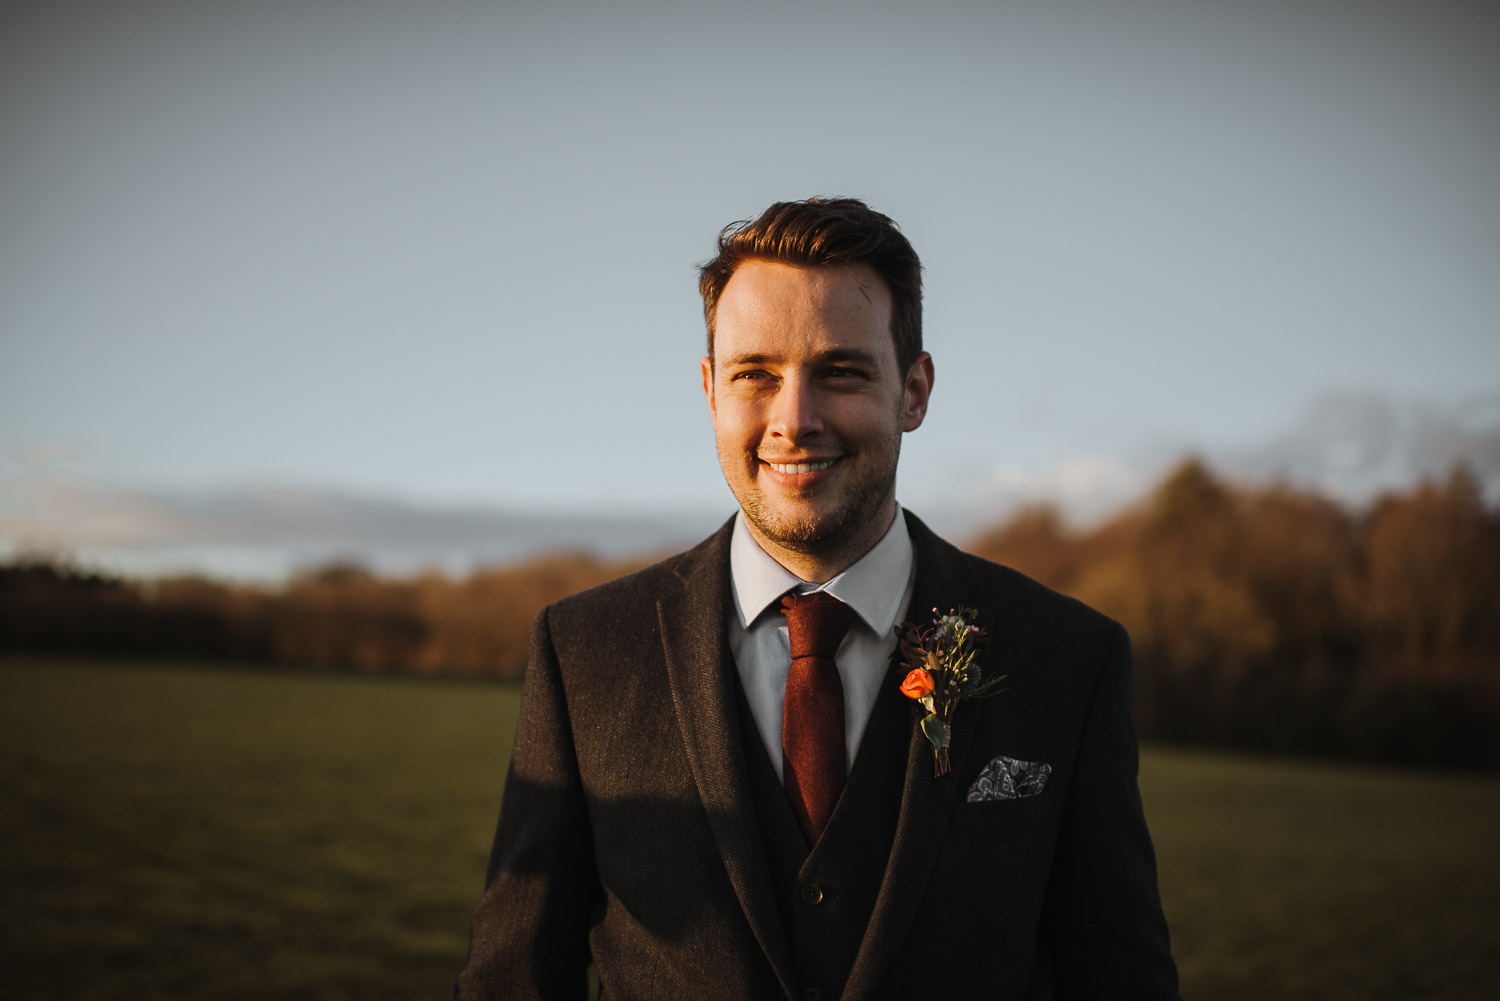 groom smiling at bride by creative and alternative london wedding photographer the shannons photography